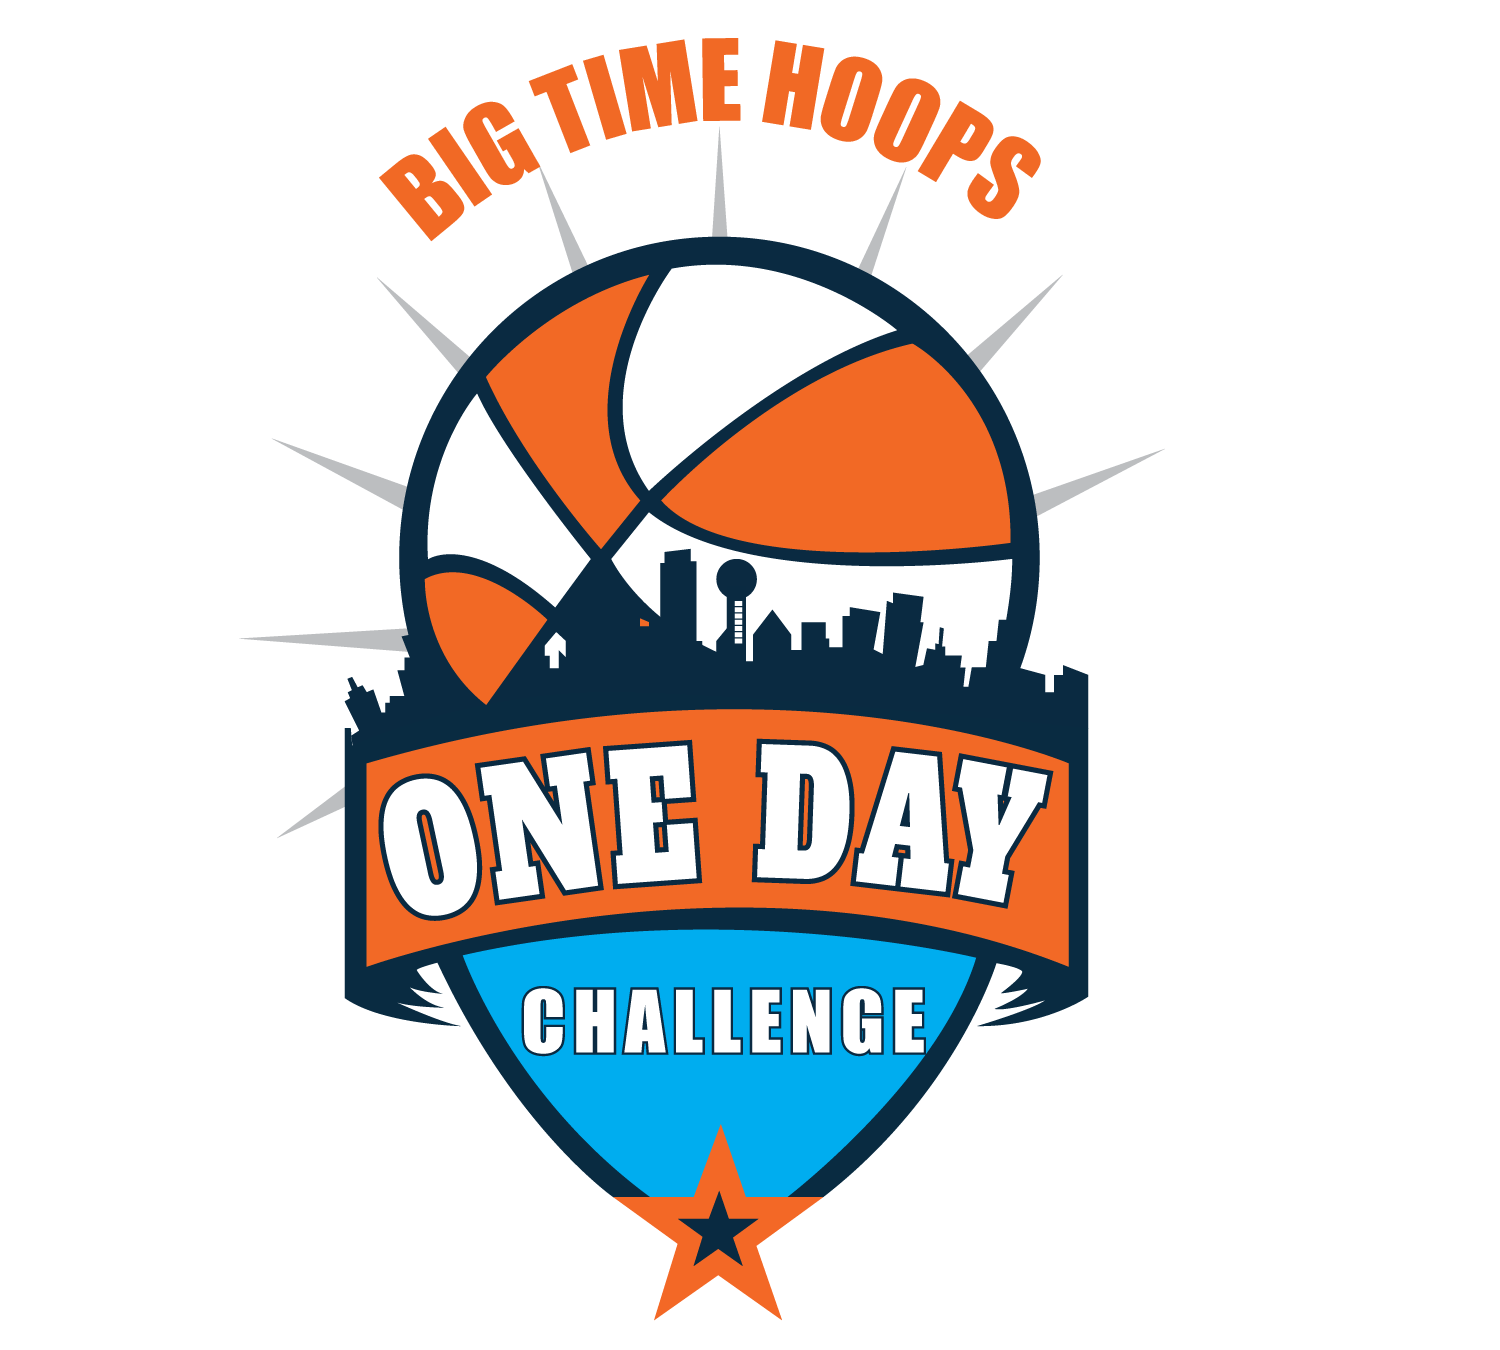 Central Florida One Day Challenge